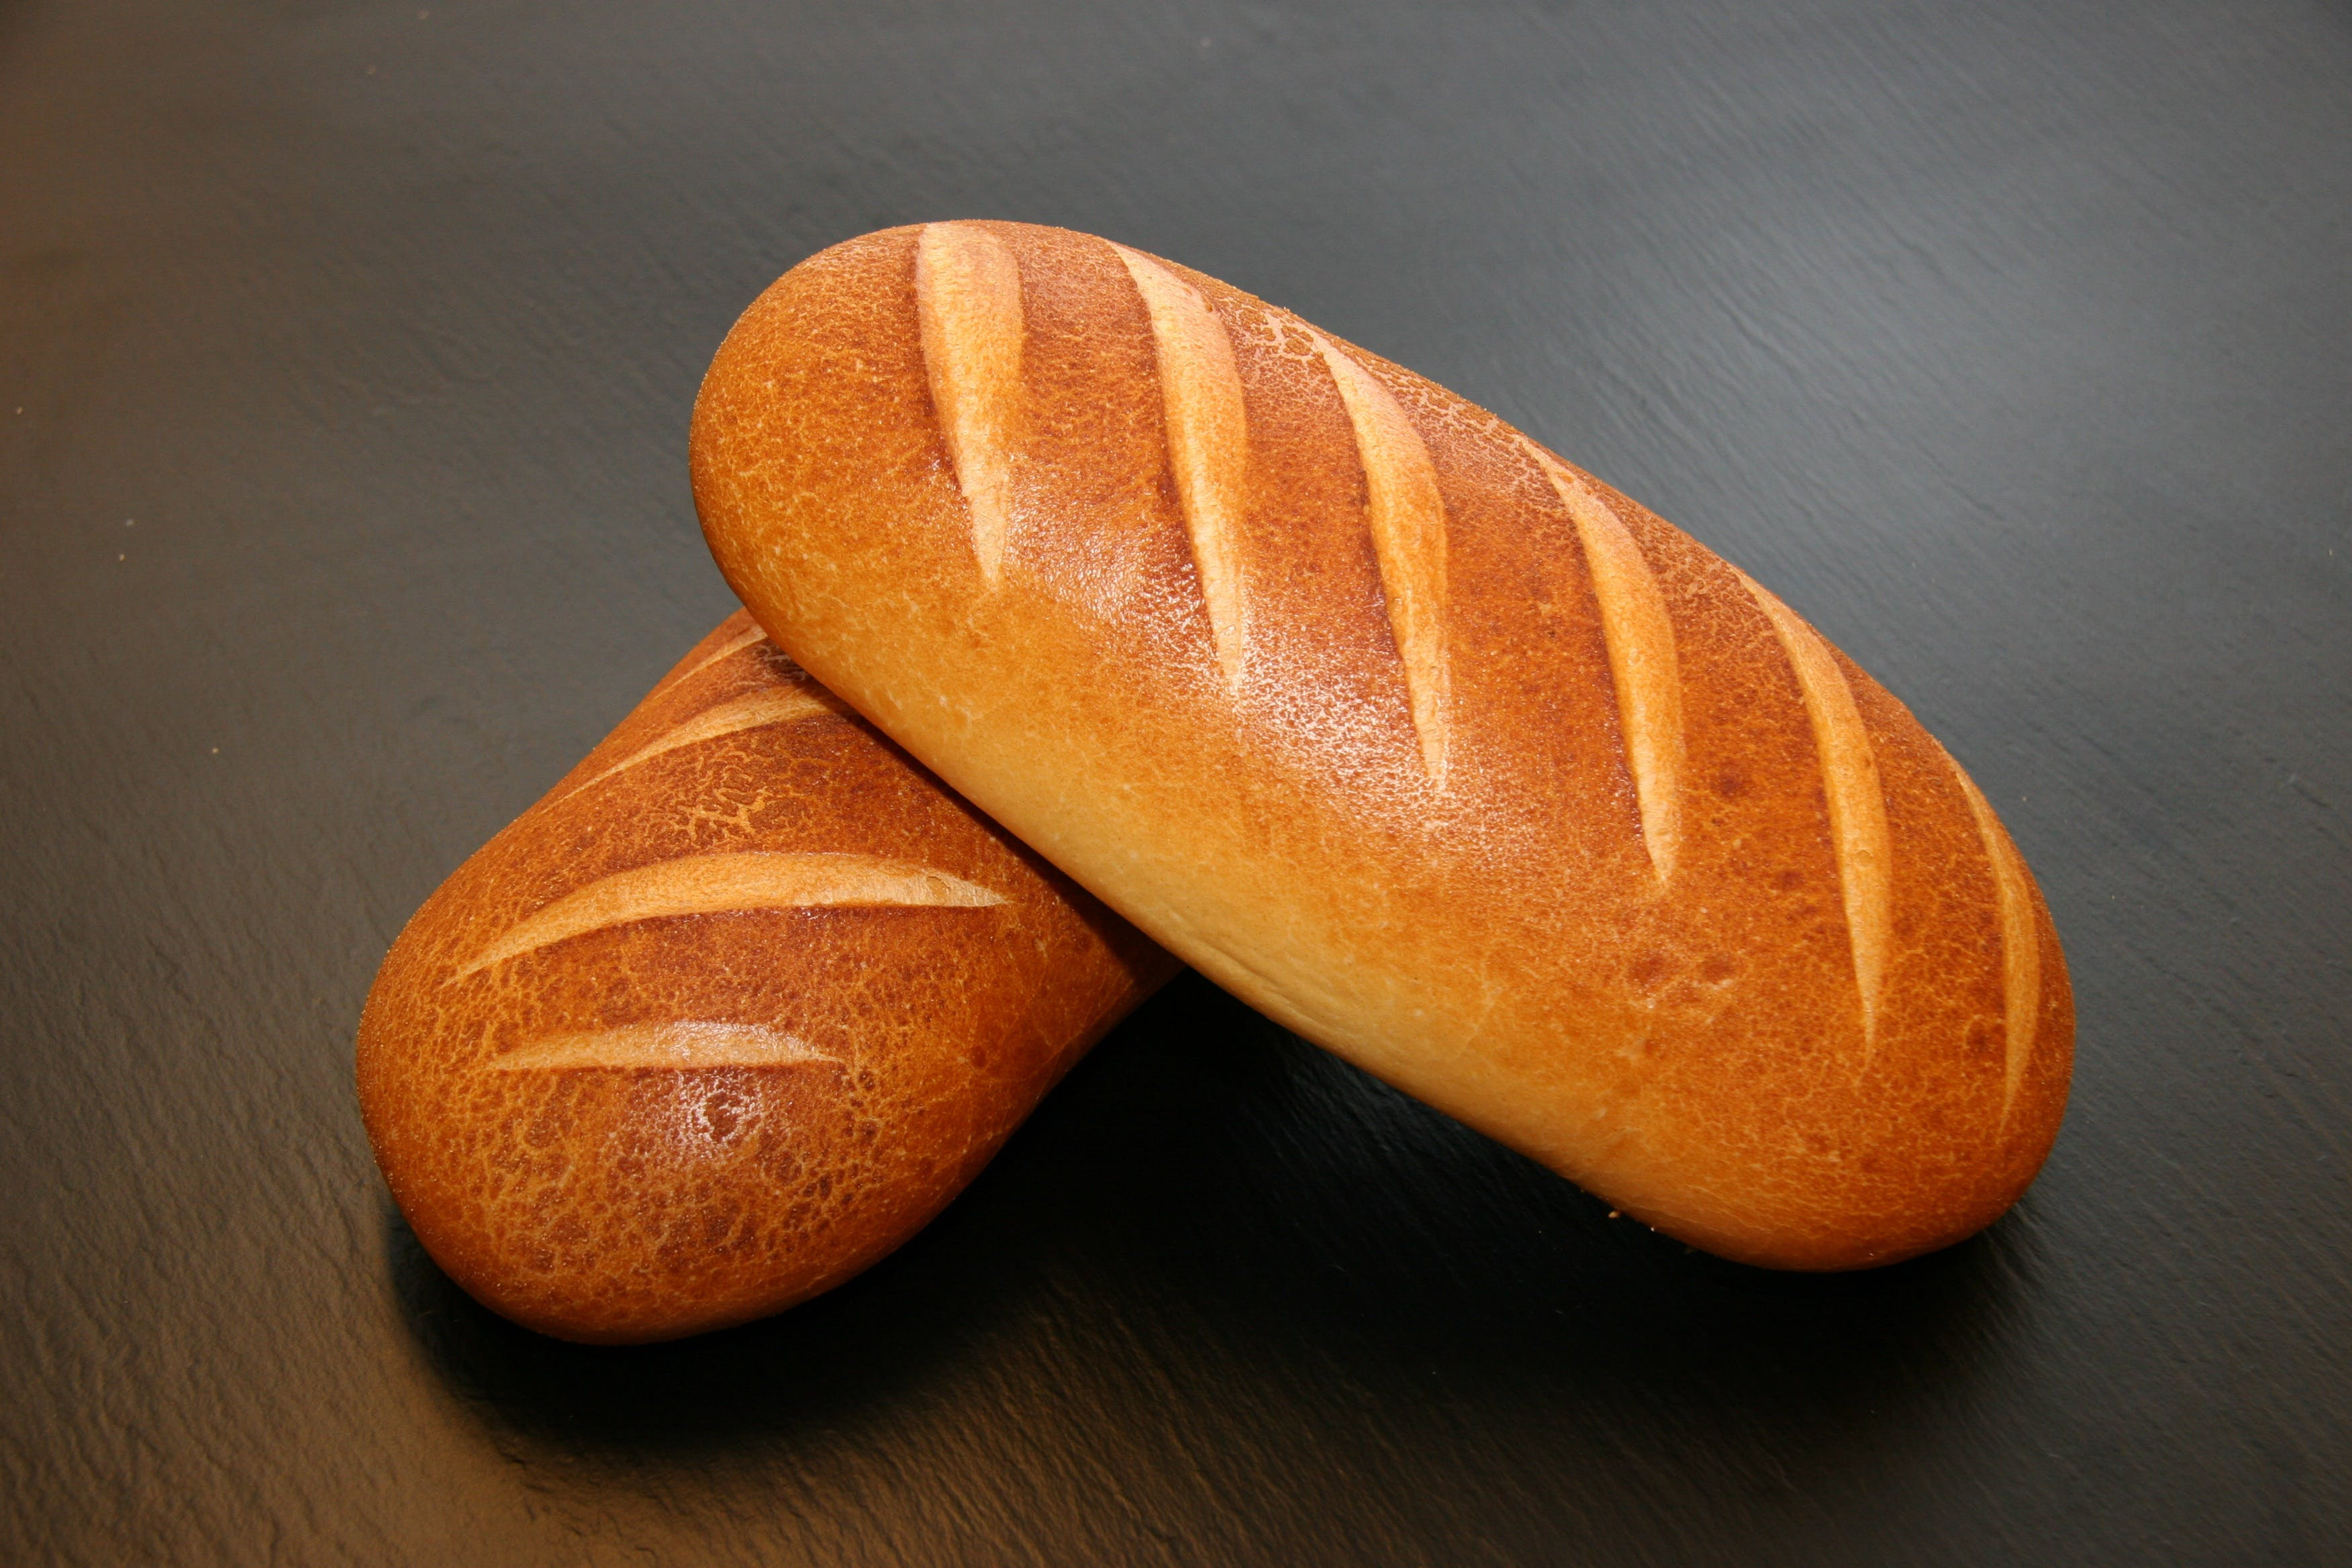 Two Brown Baked Breads on Table